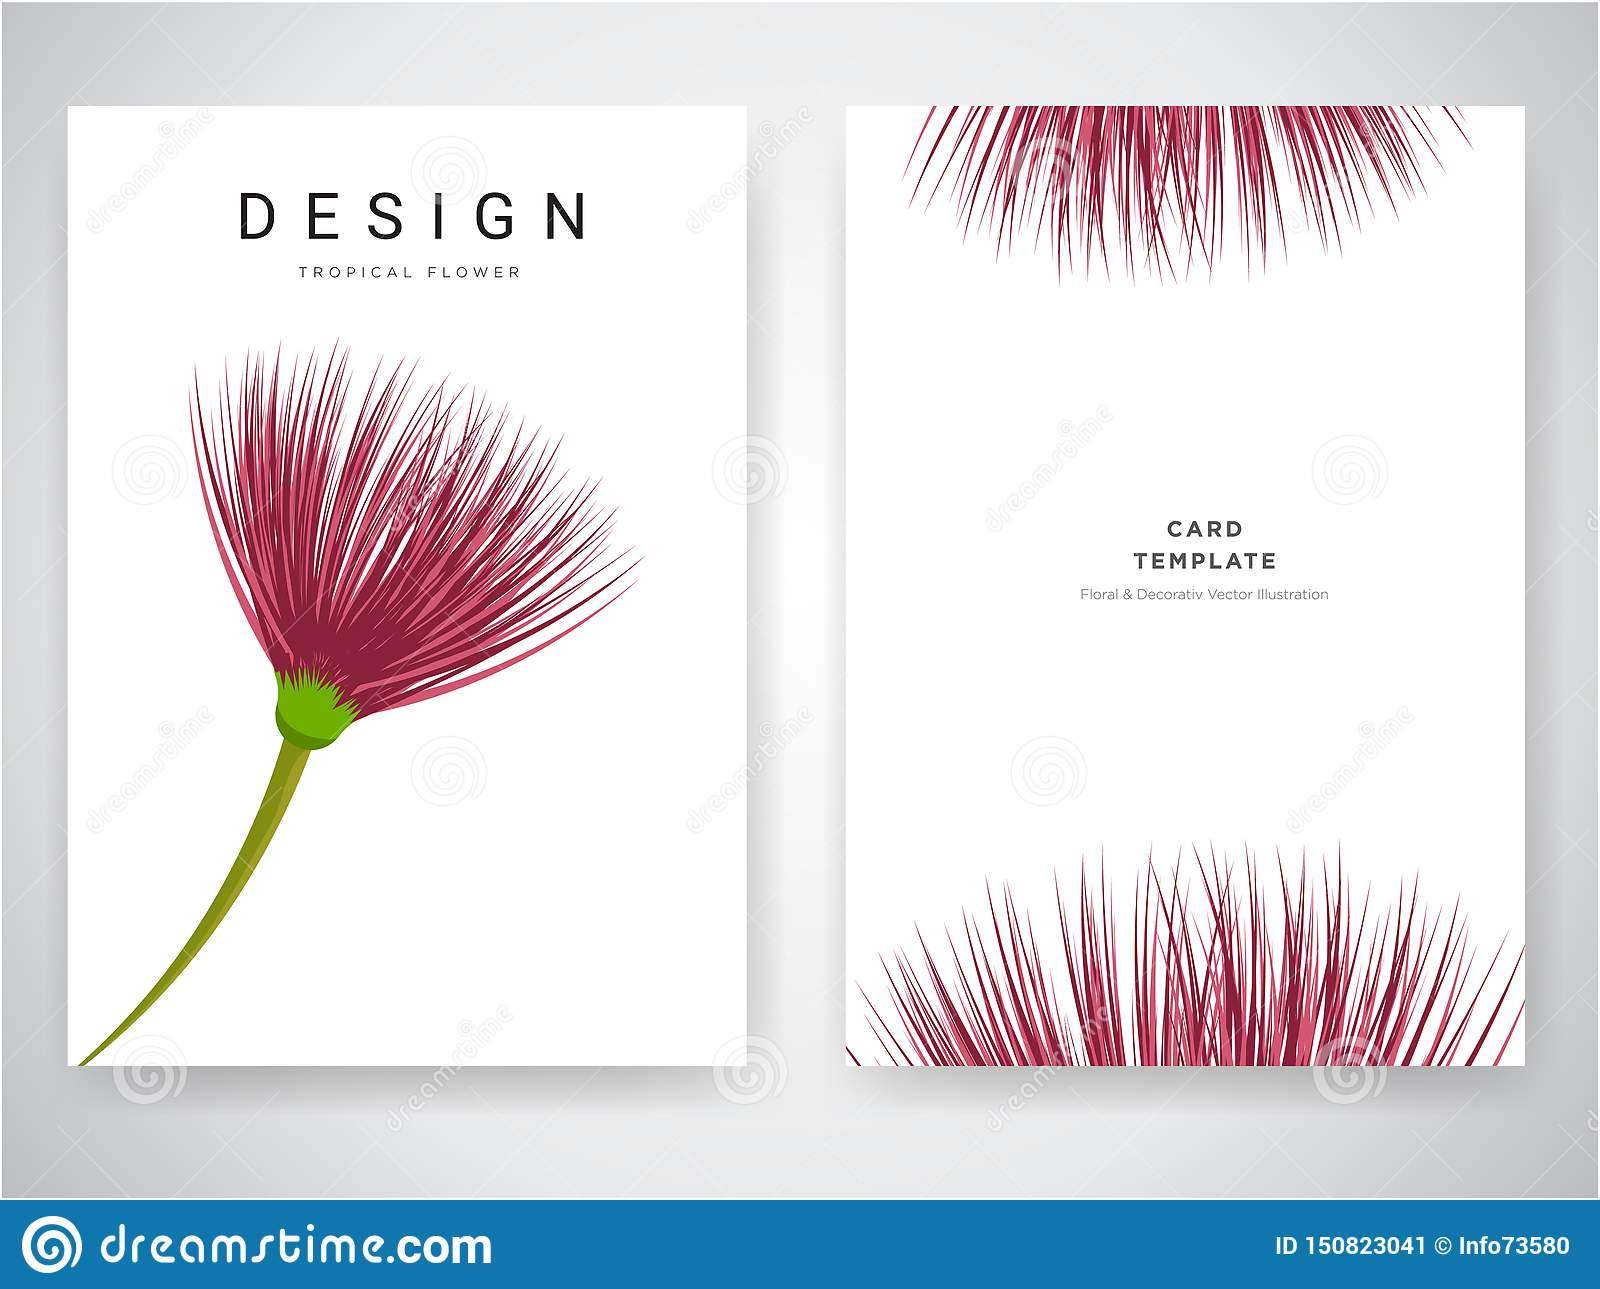 Wedding Invitation Card Design With Tropical Flowers Invite Thank You Rsvp Modern Card Design Tropical Bright Leaf Branches Stock Vector Illustration Of Natural Frame 150823041